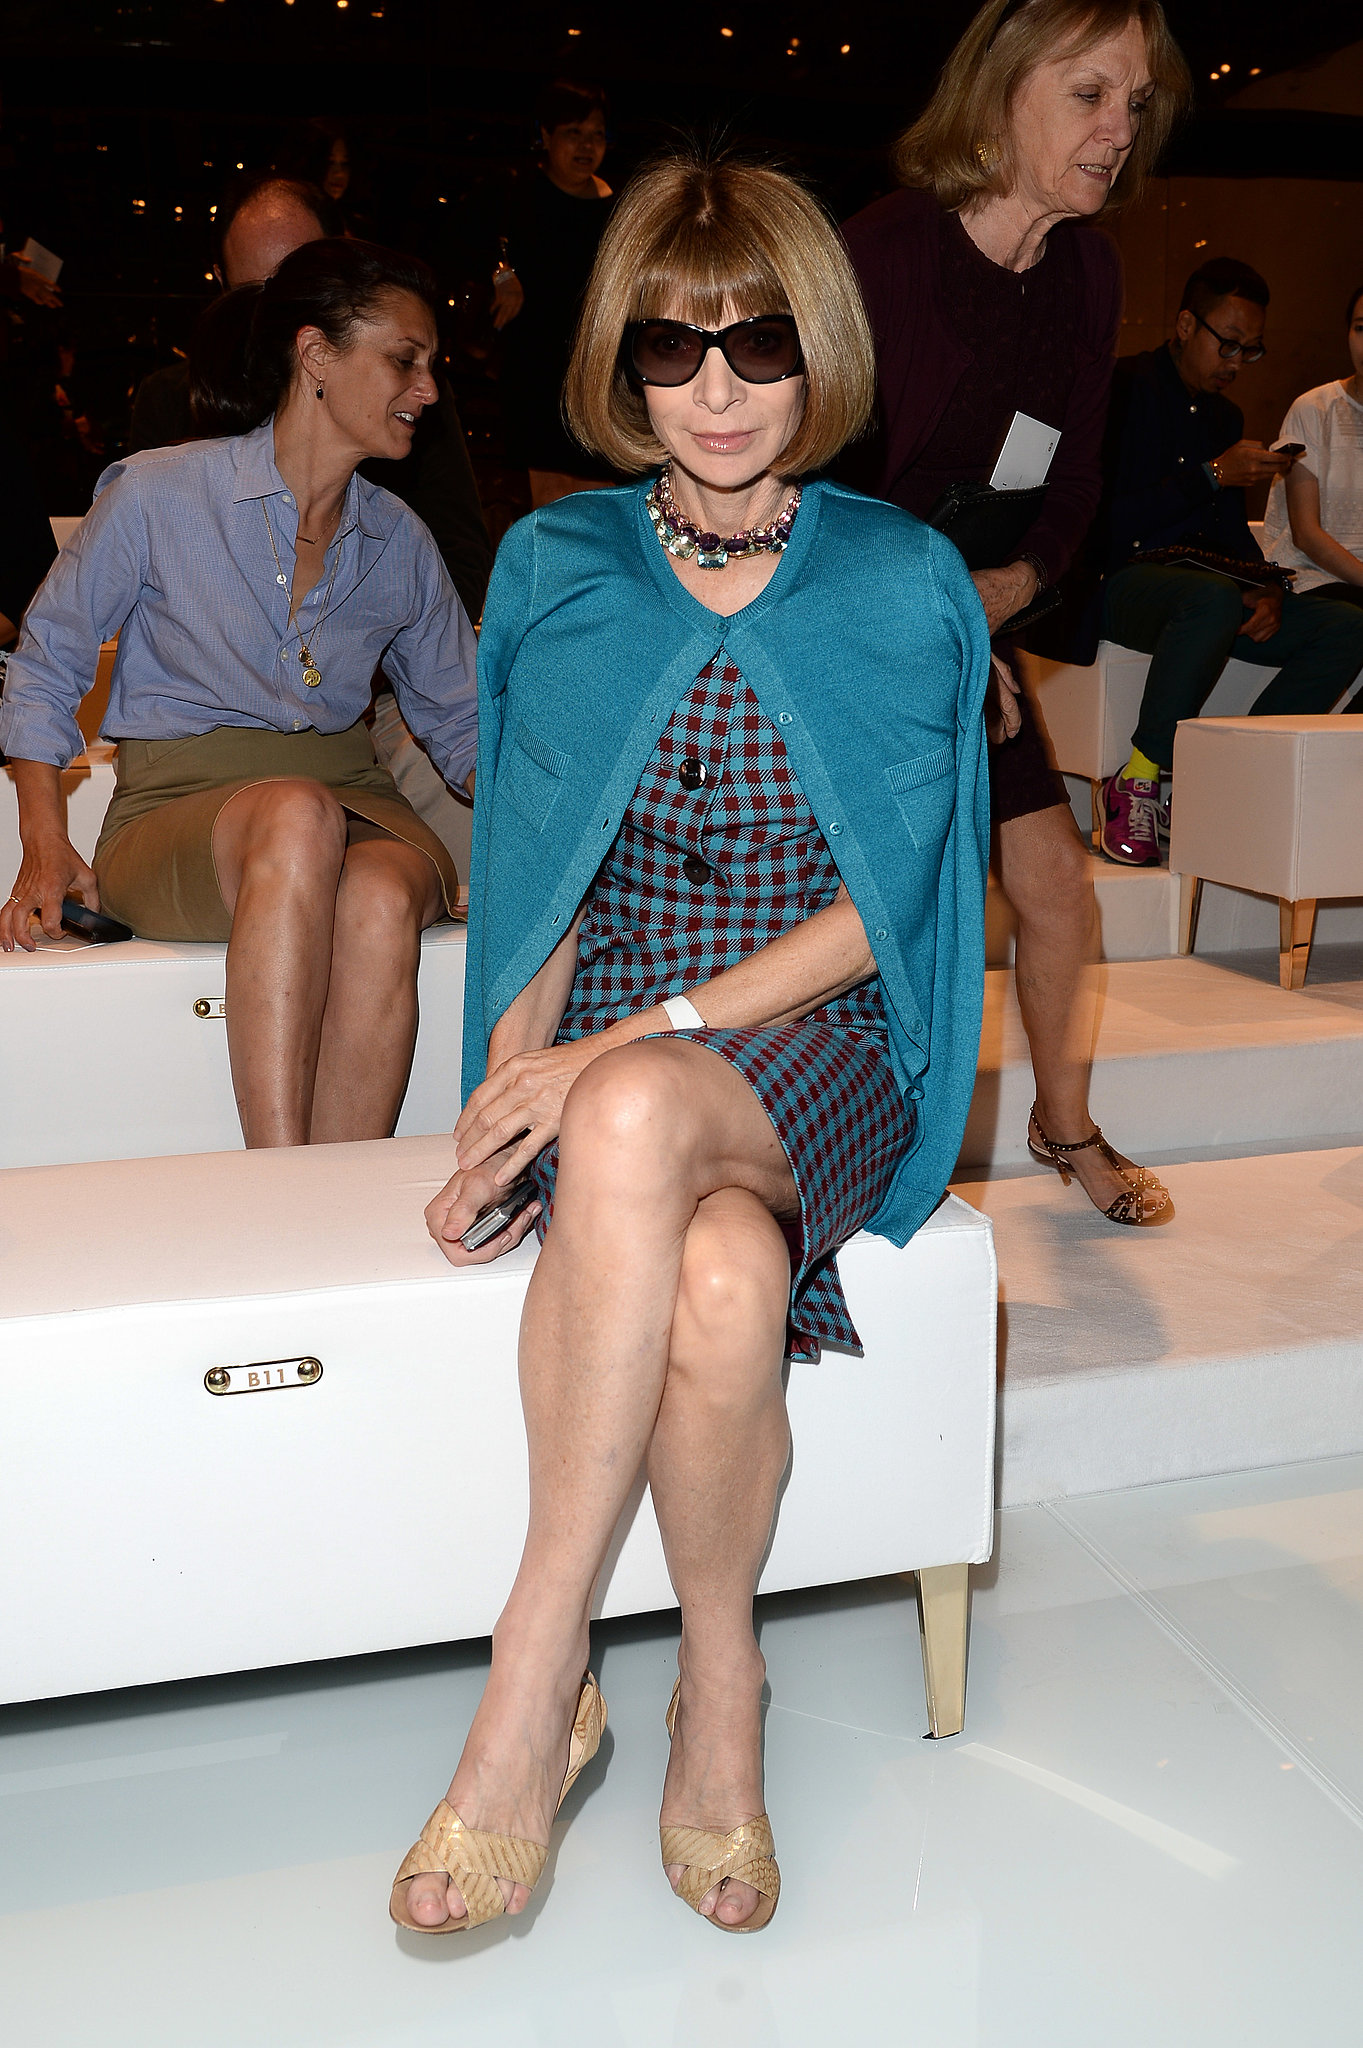 Anna Wintour readied for Gucci's Spring runway show in a teal ensemble.